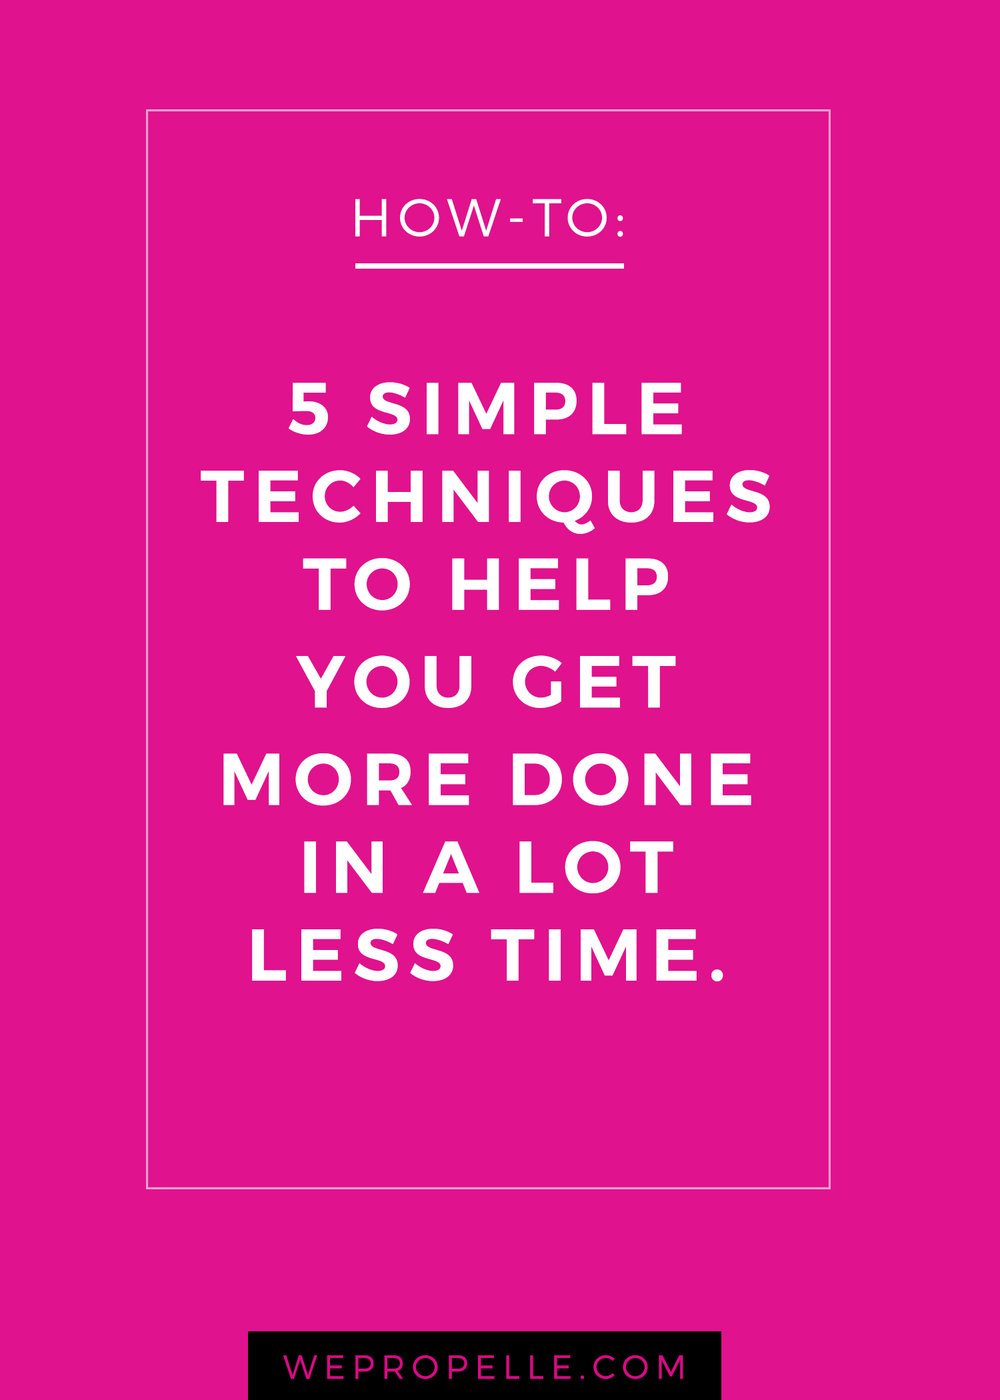 5 tips to help you get more done | wepropelle.com